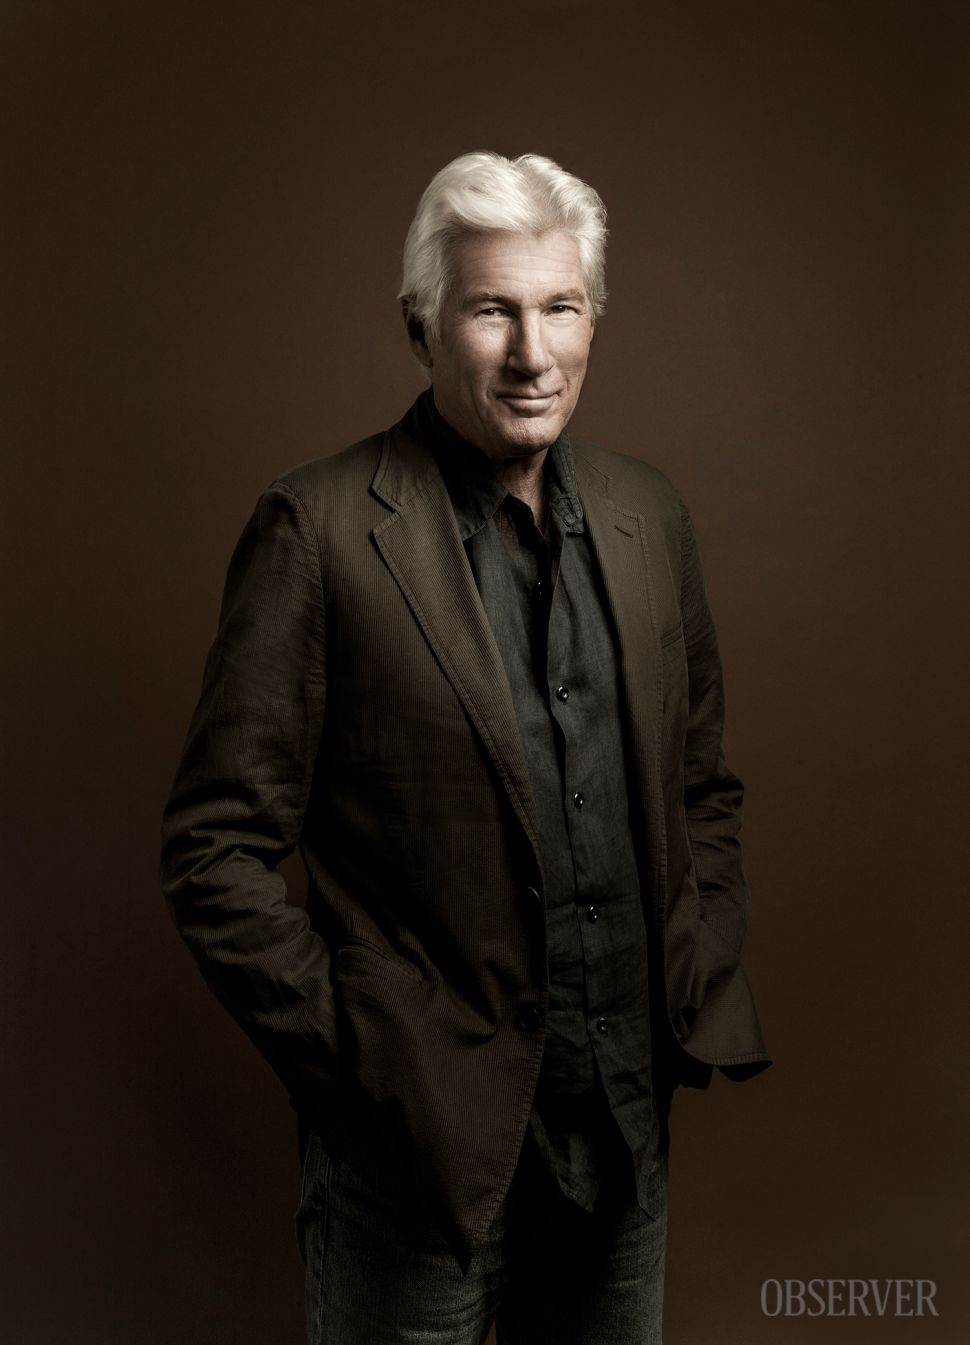 Richard Gere Produces, Stars in Film Asking: What Happens When You Hit Bottom in NY?